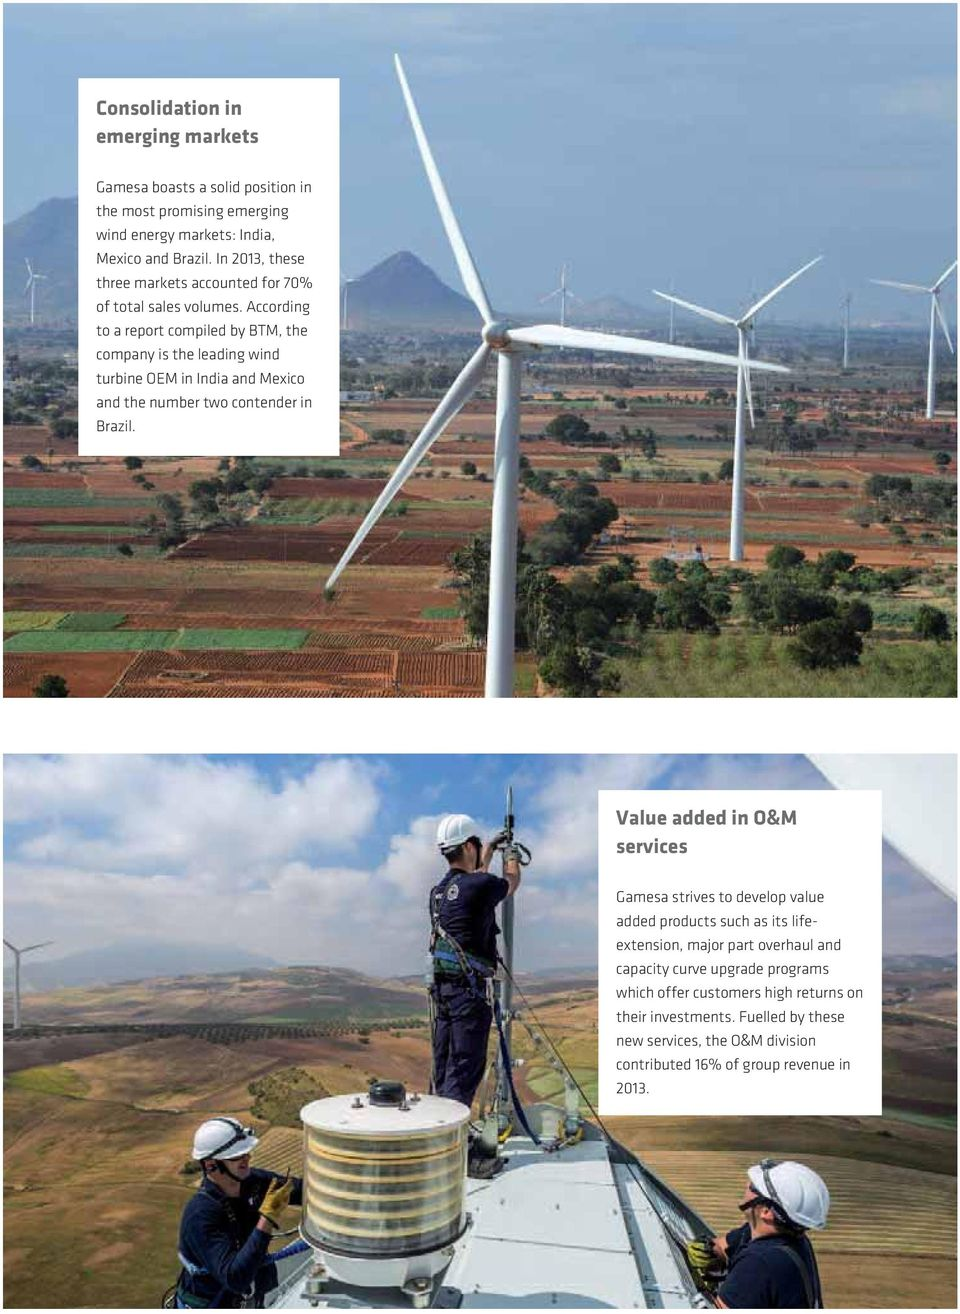 According to a report compiled by BTM, the company is the leading wind turbine OEM in India and Mexico and the number two contender in Brazil.